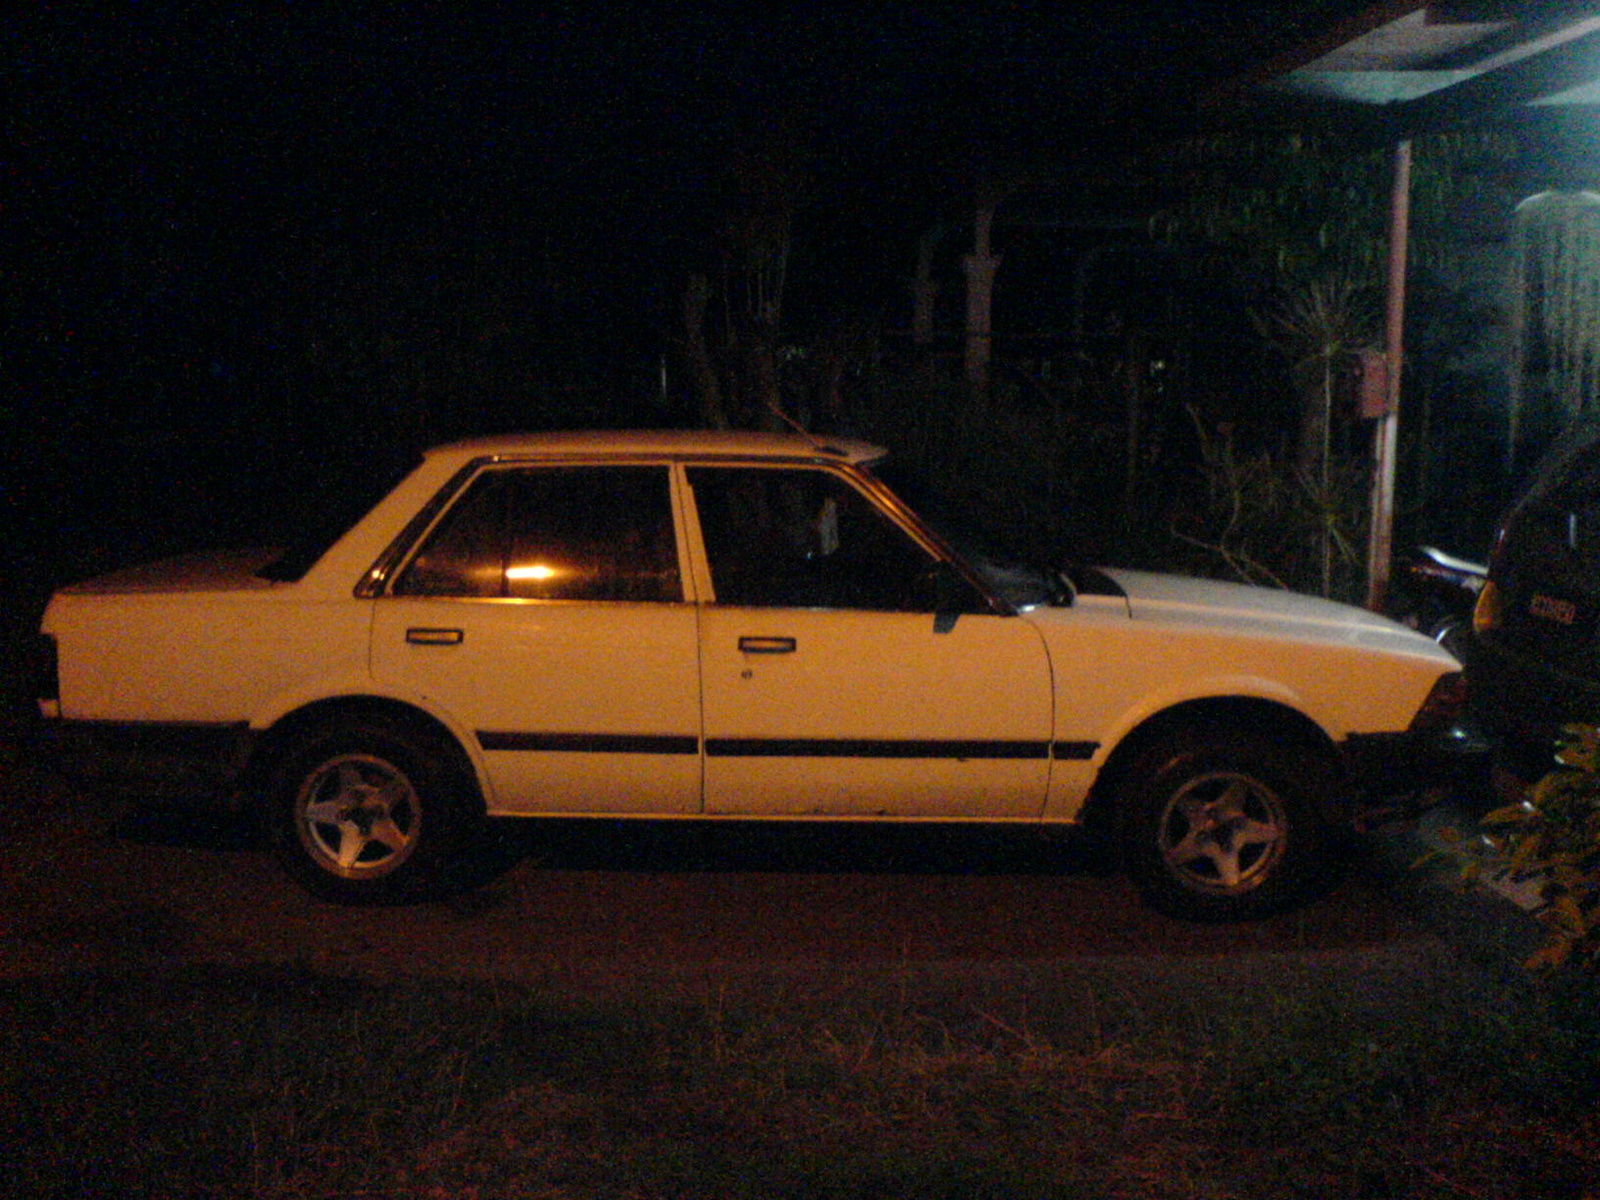 1983 Honda Accord Base Sedan, my car!